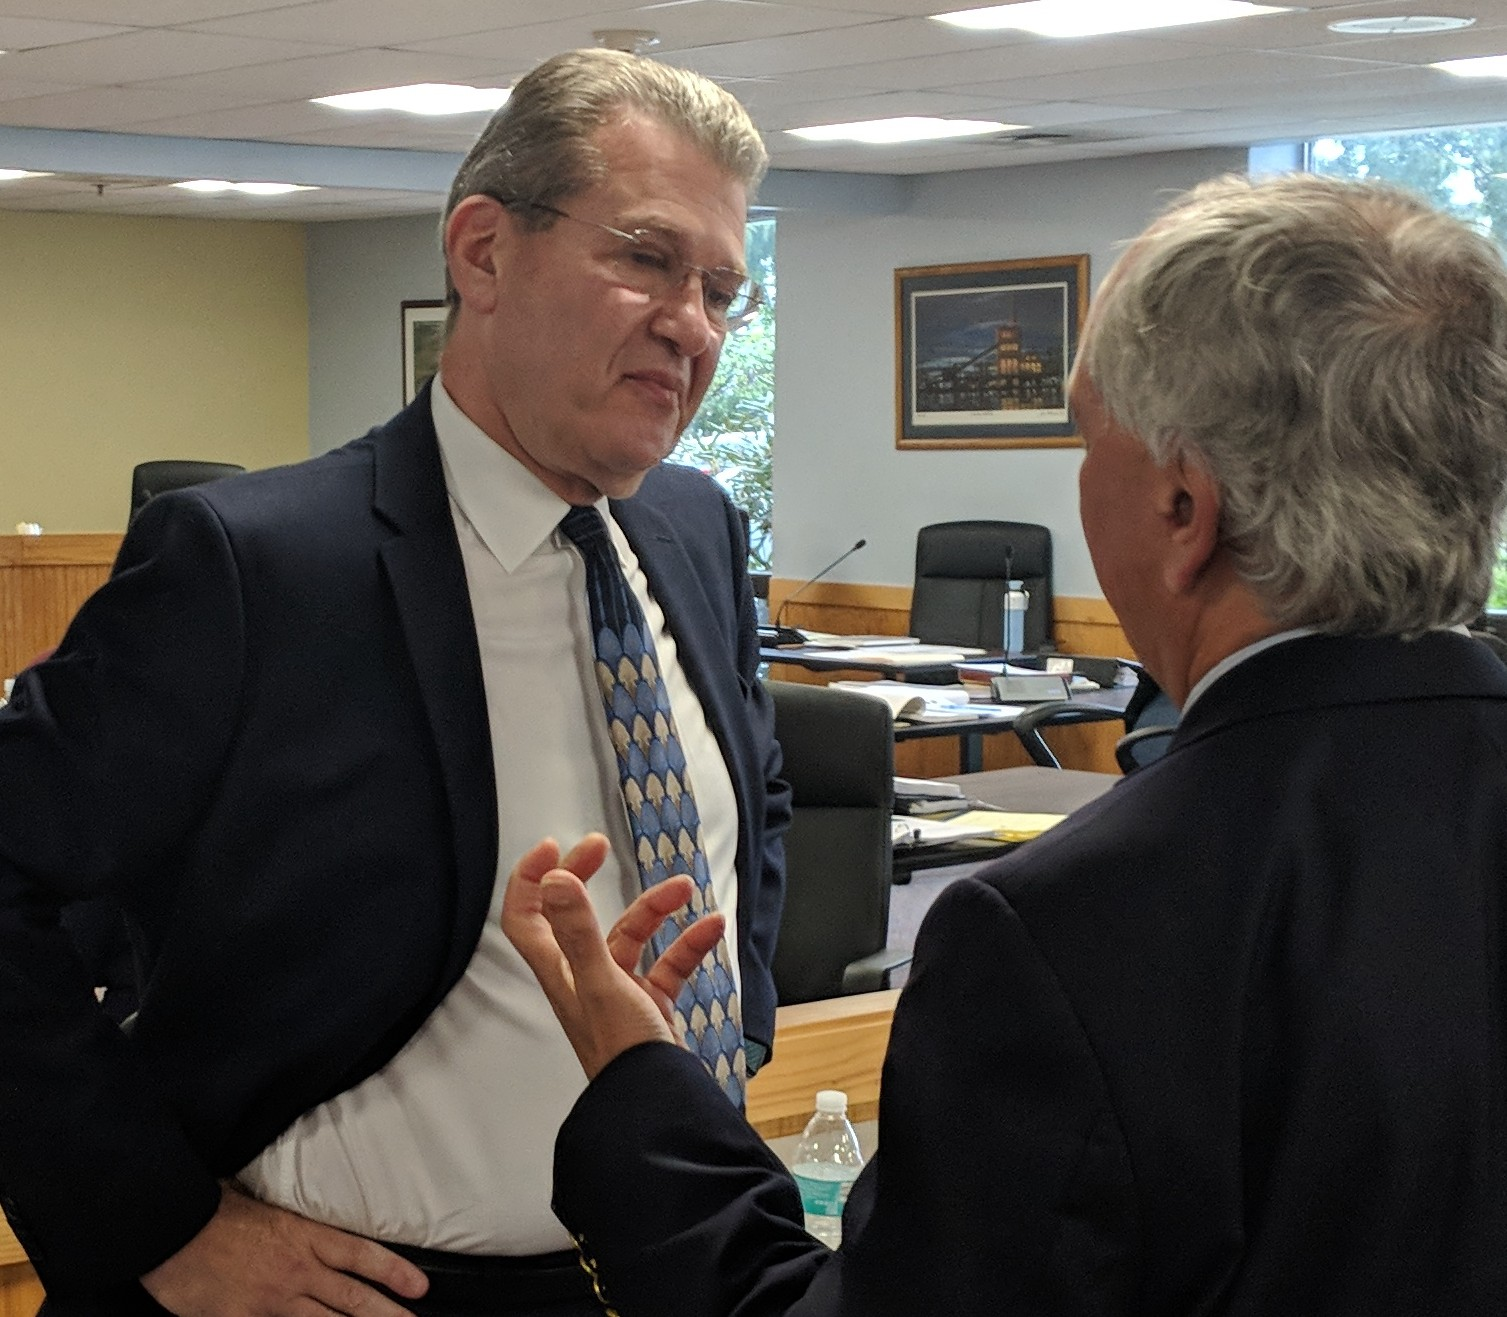 Michael Blazer, left, chief legal counsel for Invenergy, is expected to discuss the Clear River Energy Center situation with attorneys from the Conservation Law Foundation and the town of Burrillville. (Tim Faulkner/ecoRI News)